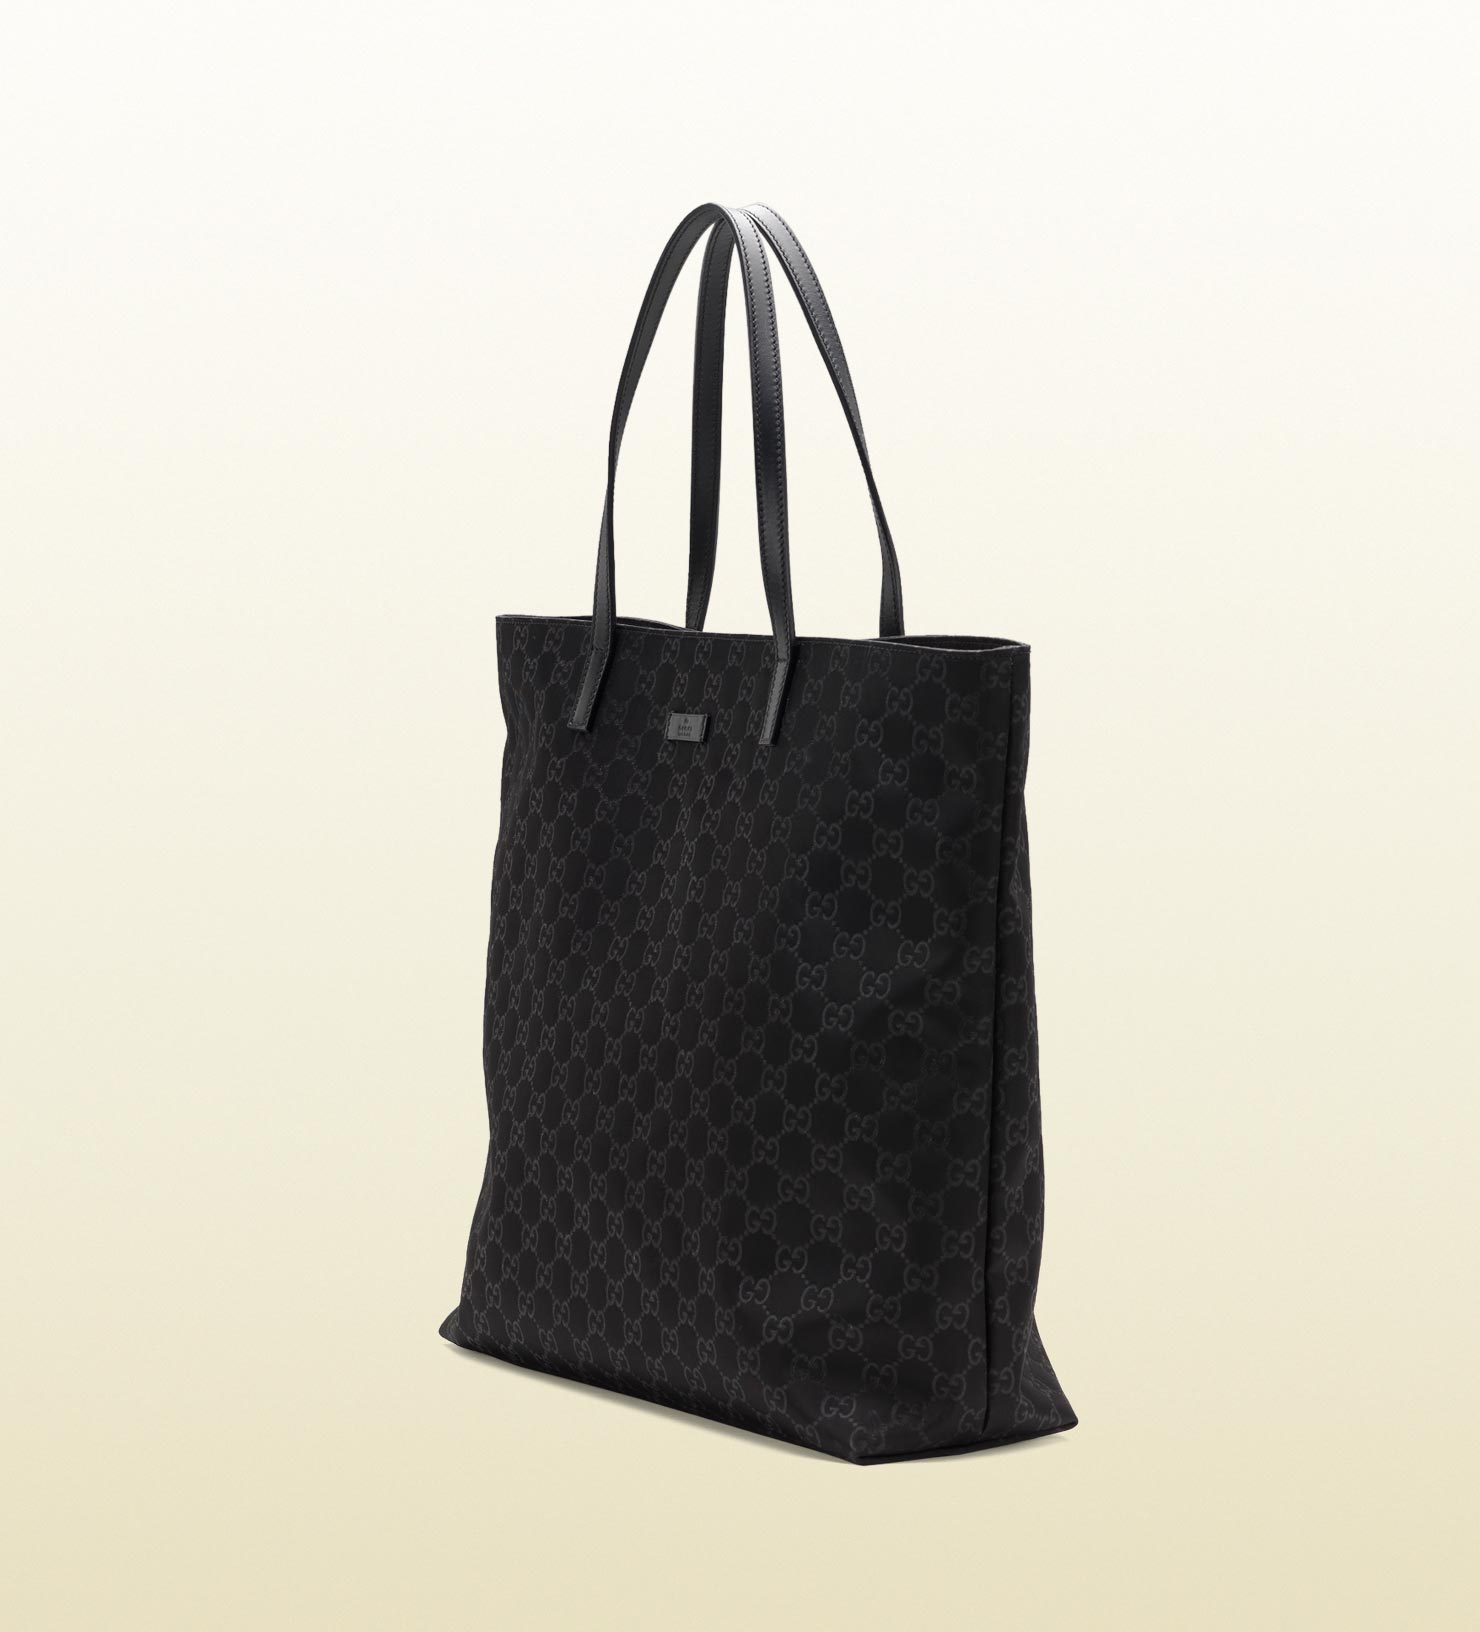 c02a4be6847 Lyst - Gucci Tote Bag in Black for Men